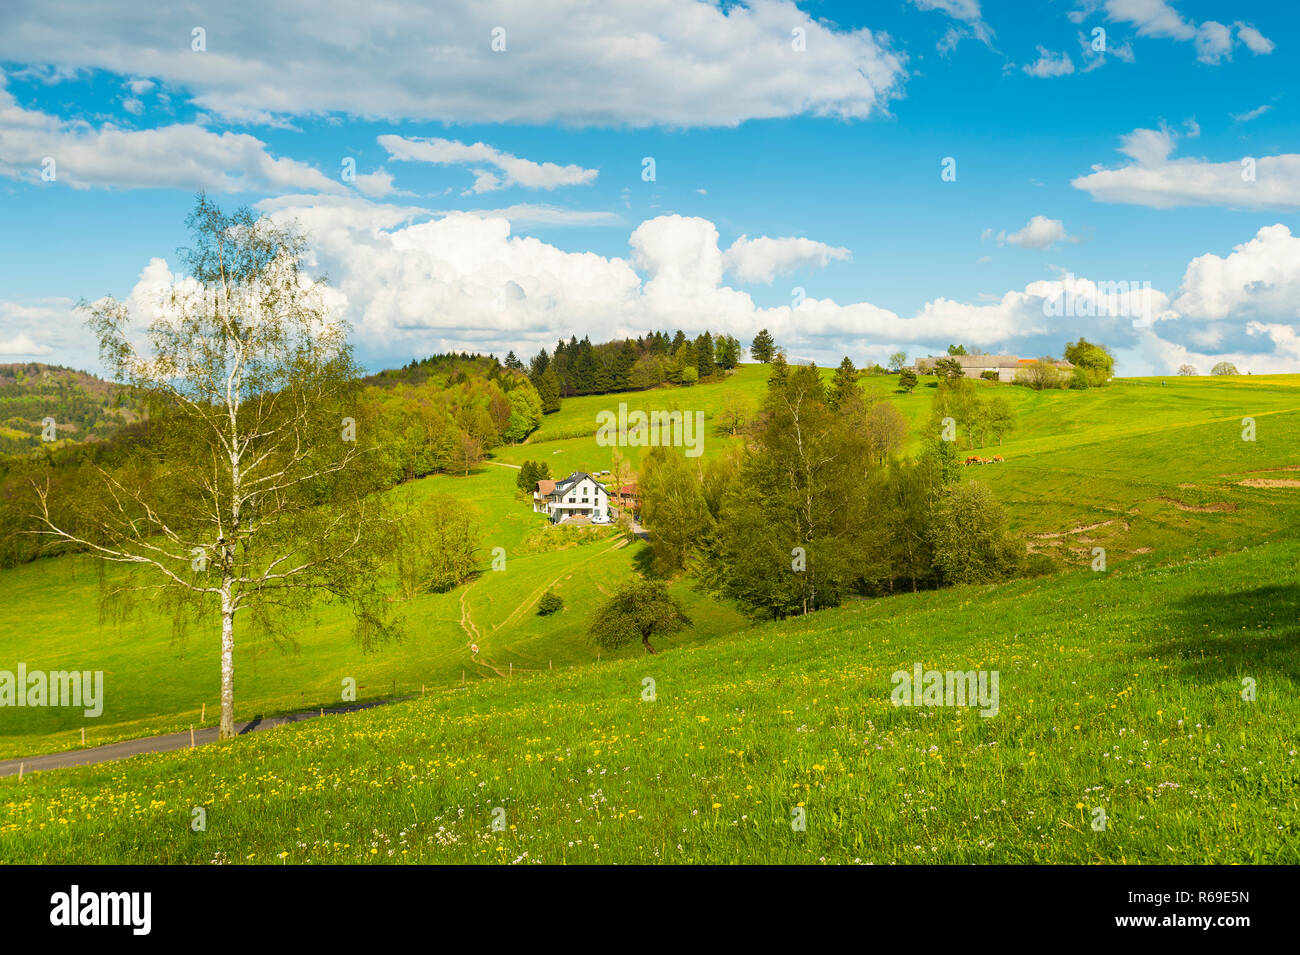 Single Farmstead Surrounded By Meadows Full Of Dandelion. - Stock Image